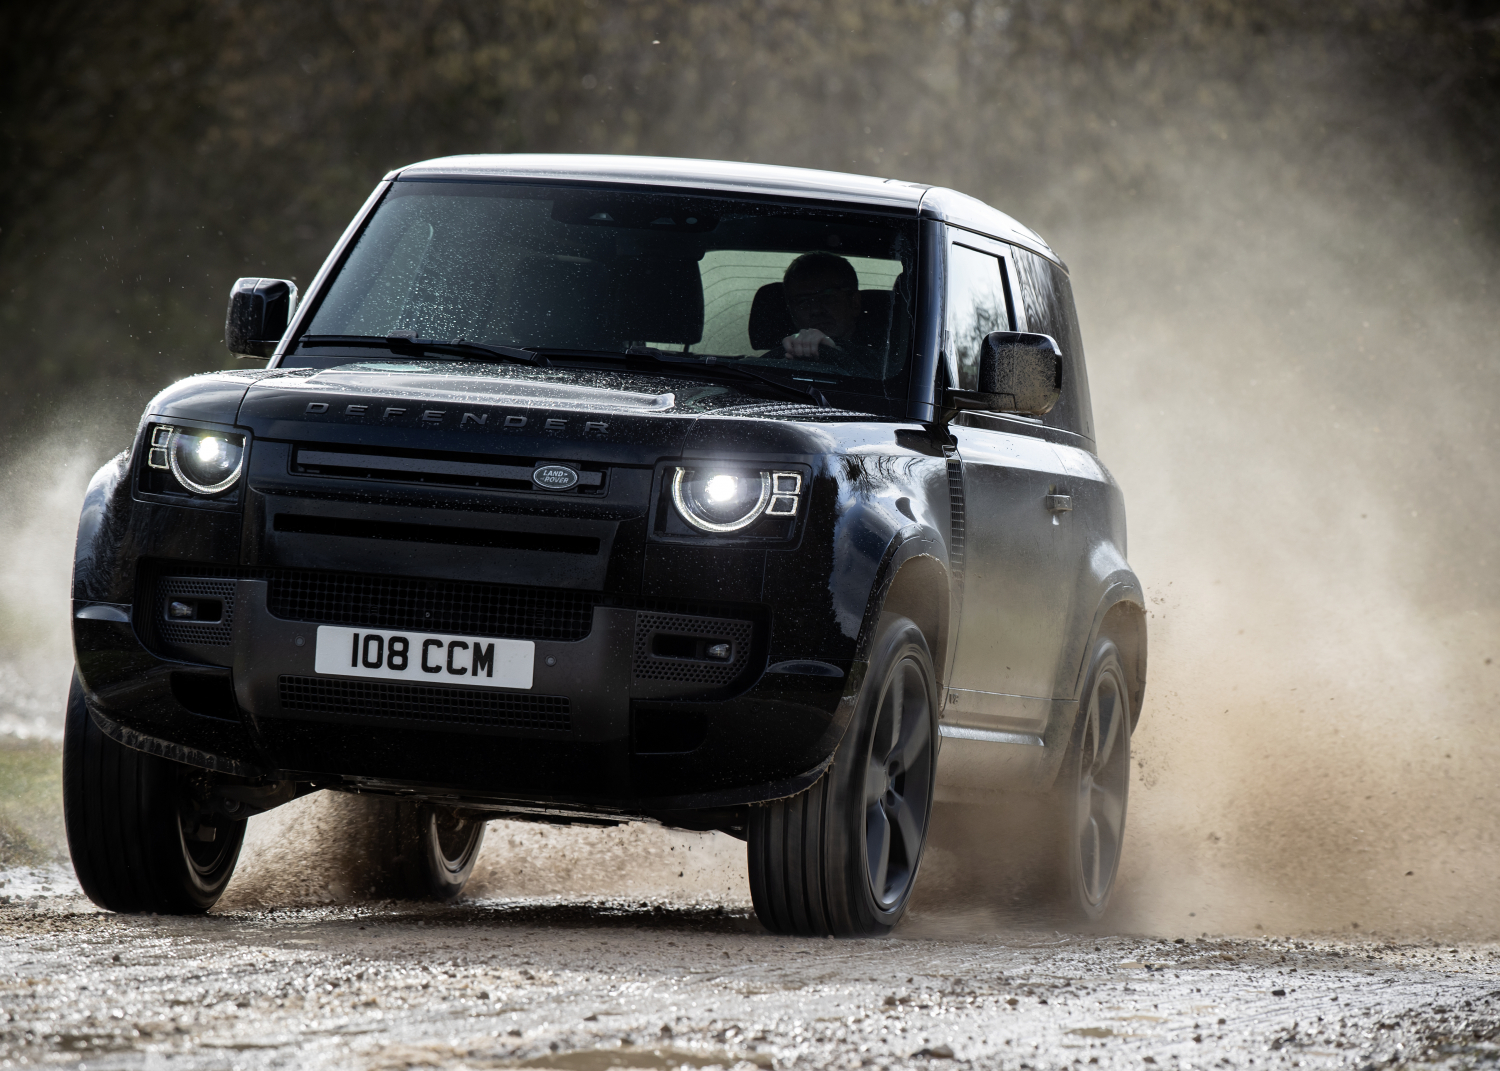 The Power of Choice: Potent New Defender V8 and Exclusive Special Editions Join the Range - Image 4